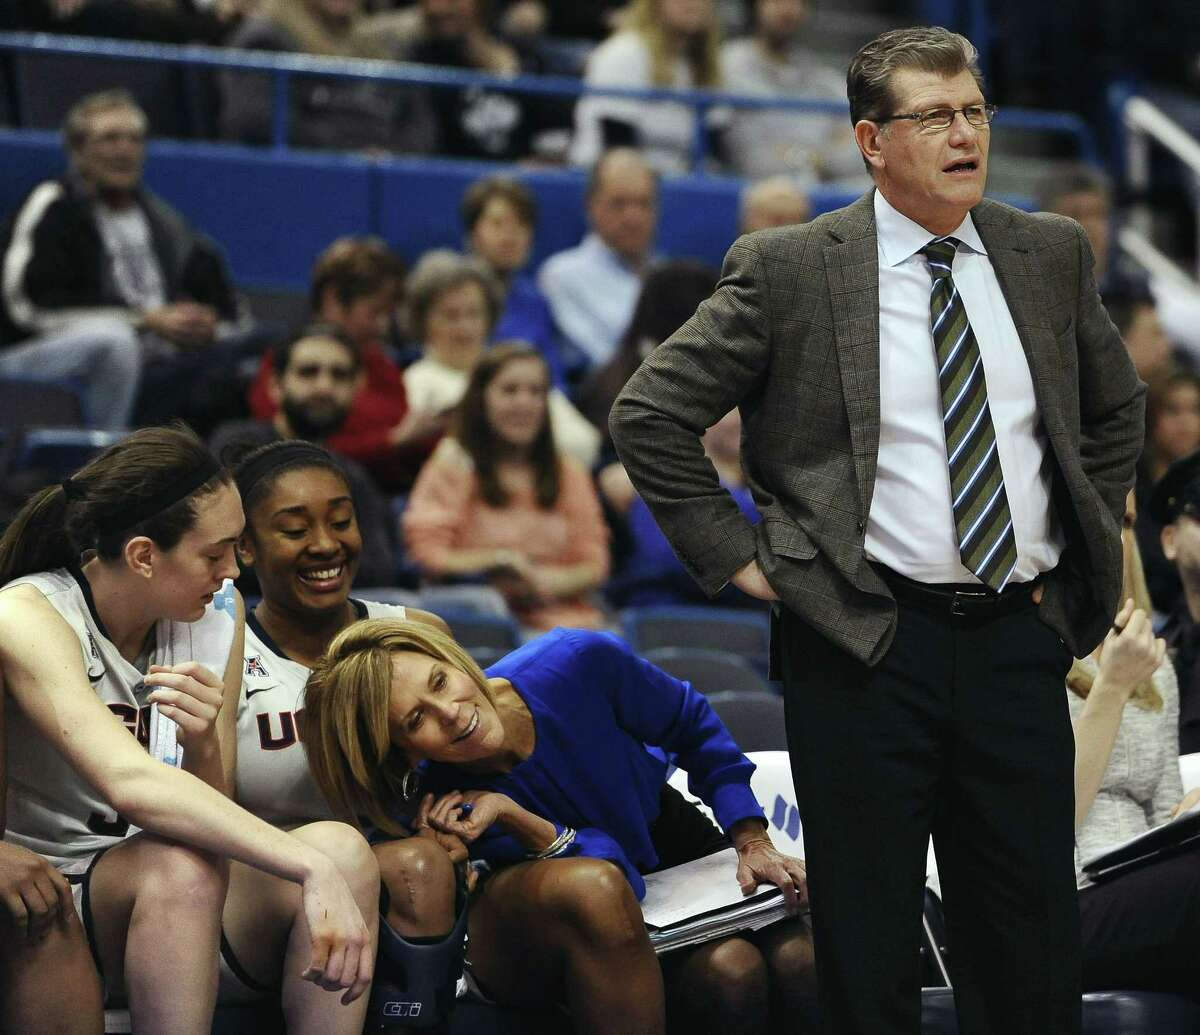 UConn associate head coach Chris Dailey, center, leans over to see the play around head coach Geno Auriemma, right, as players Breanna Stewart, left, and Morgan Tuck look on during the second half Wednesday.